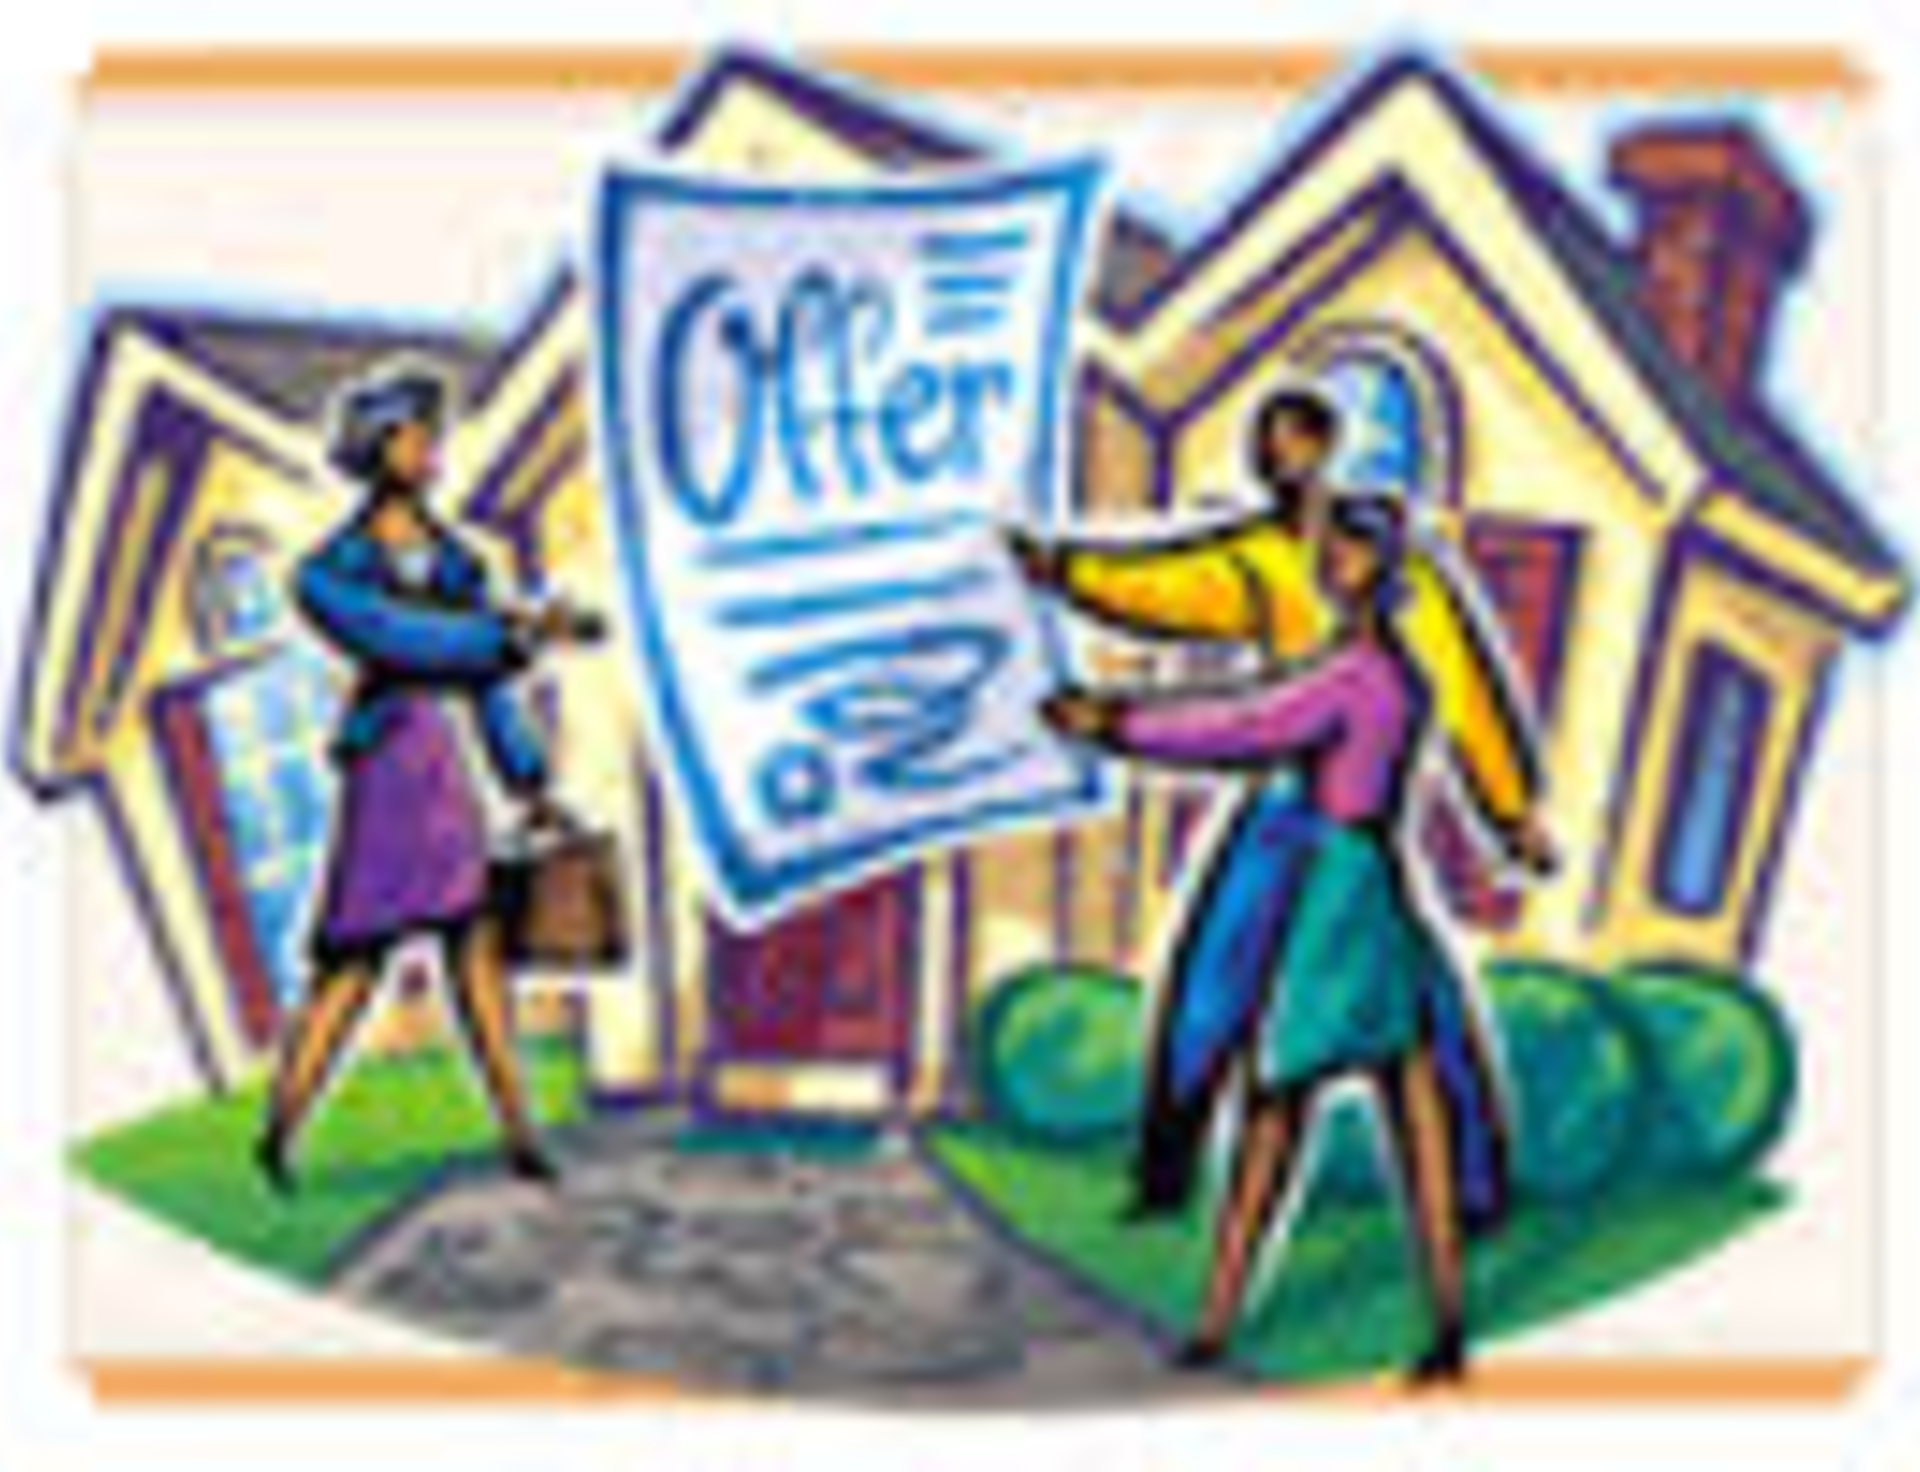 Four Ways an Offer Will Catch the Seller's Attention